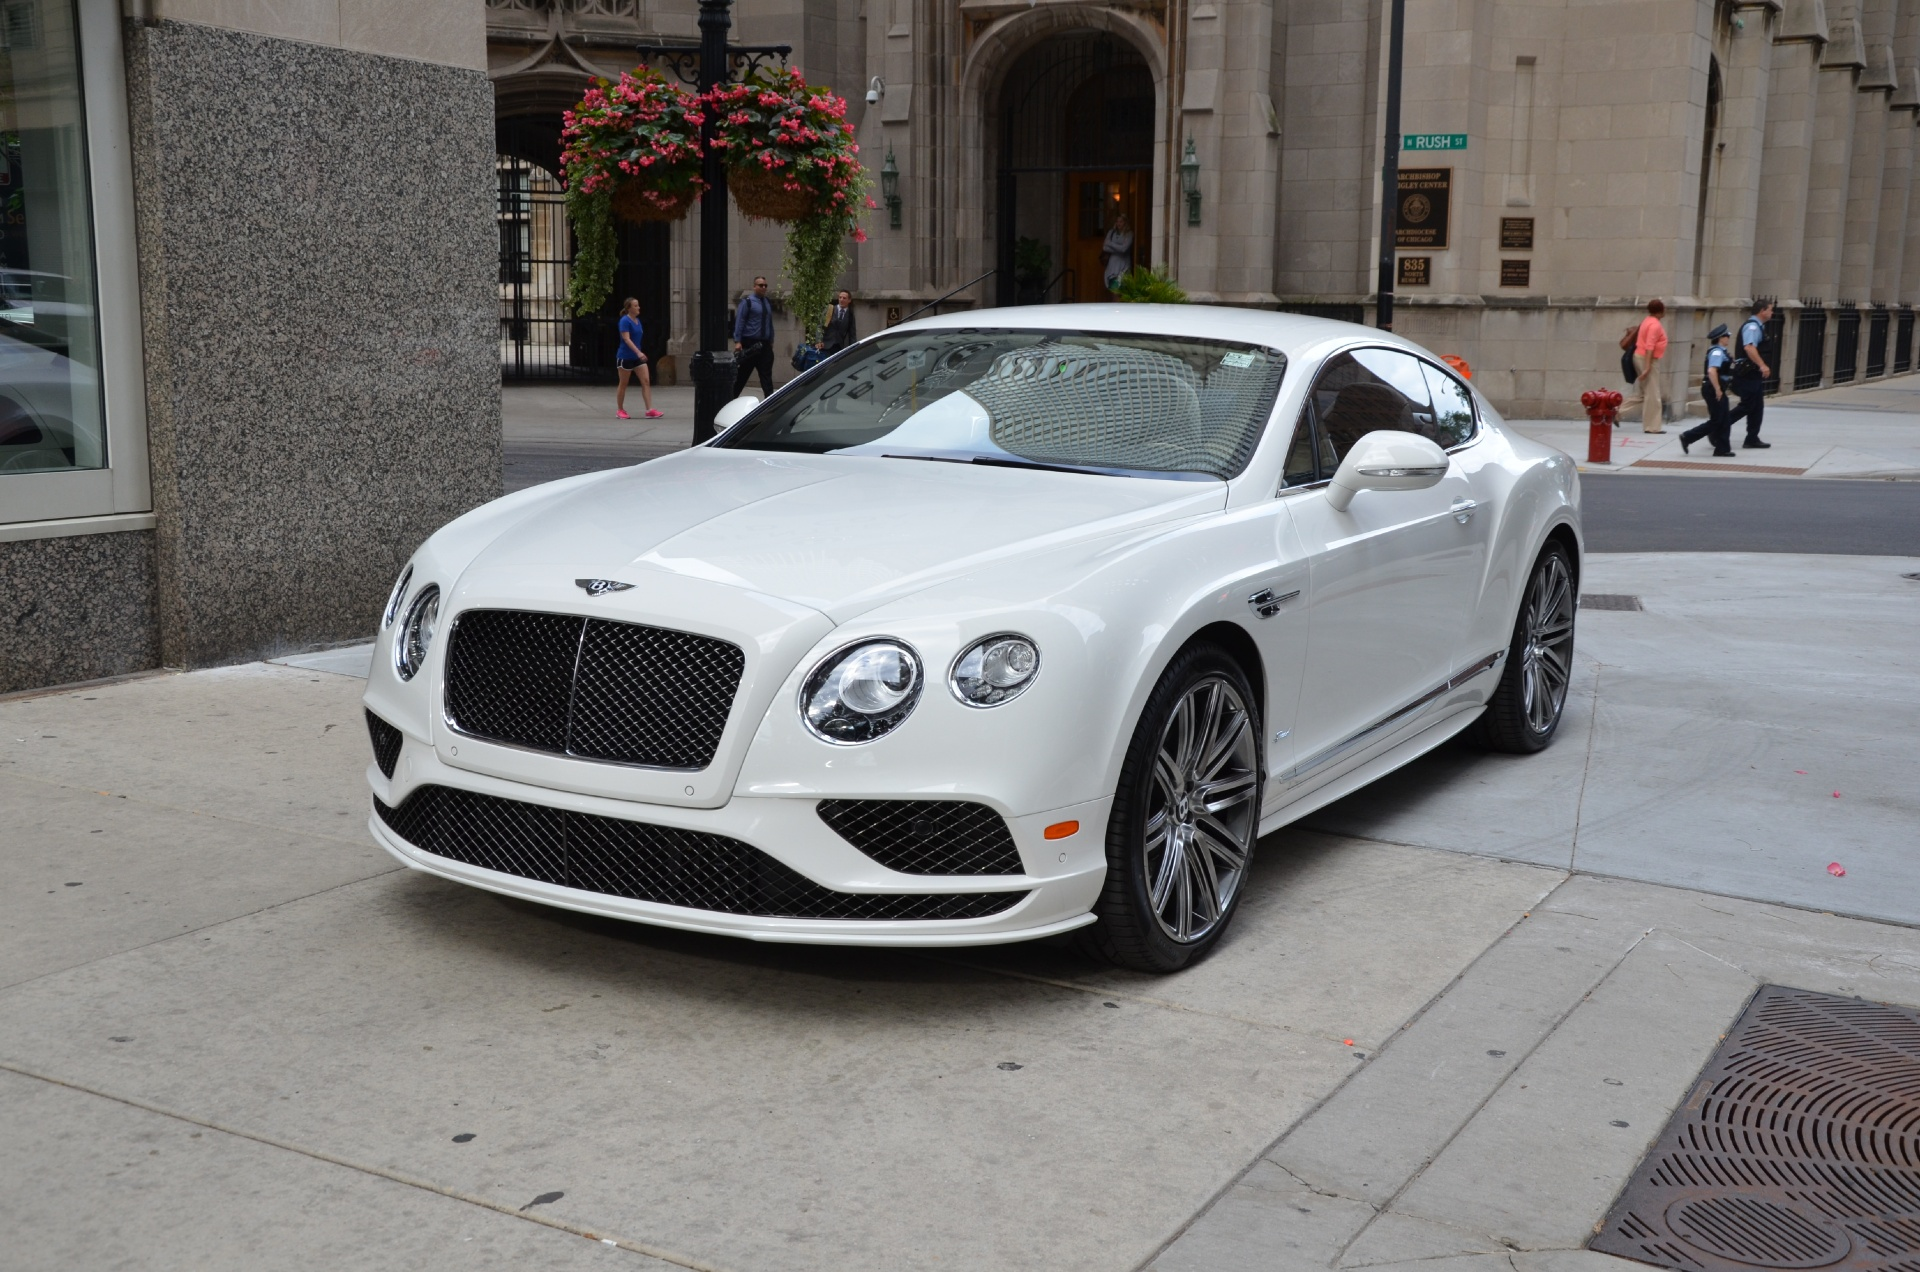 2016 bentley continental gt speed used bentley used rolls royce used lamborghini used. Black Bedroom Furniture Sets. Home Design Ideas